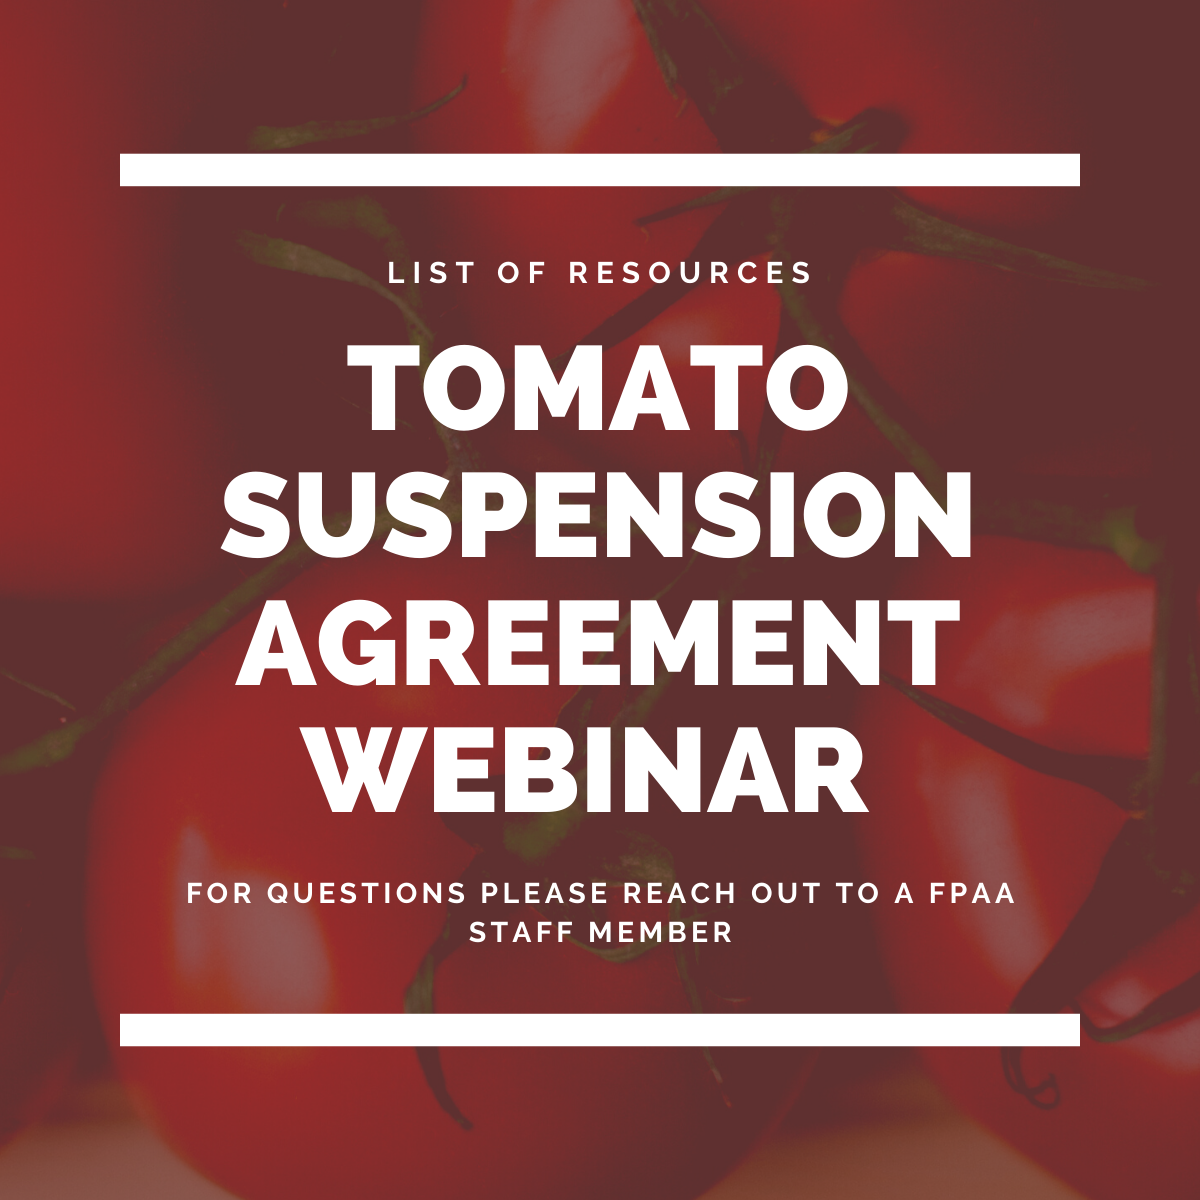 Tomato Suspension Agreement Webinar Resources